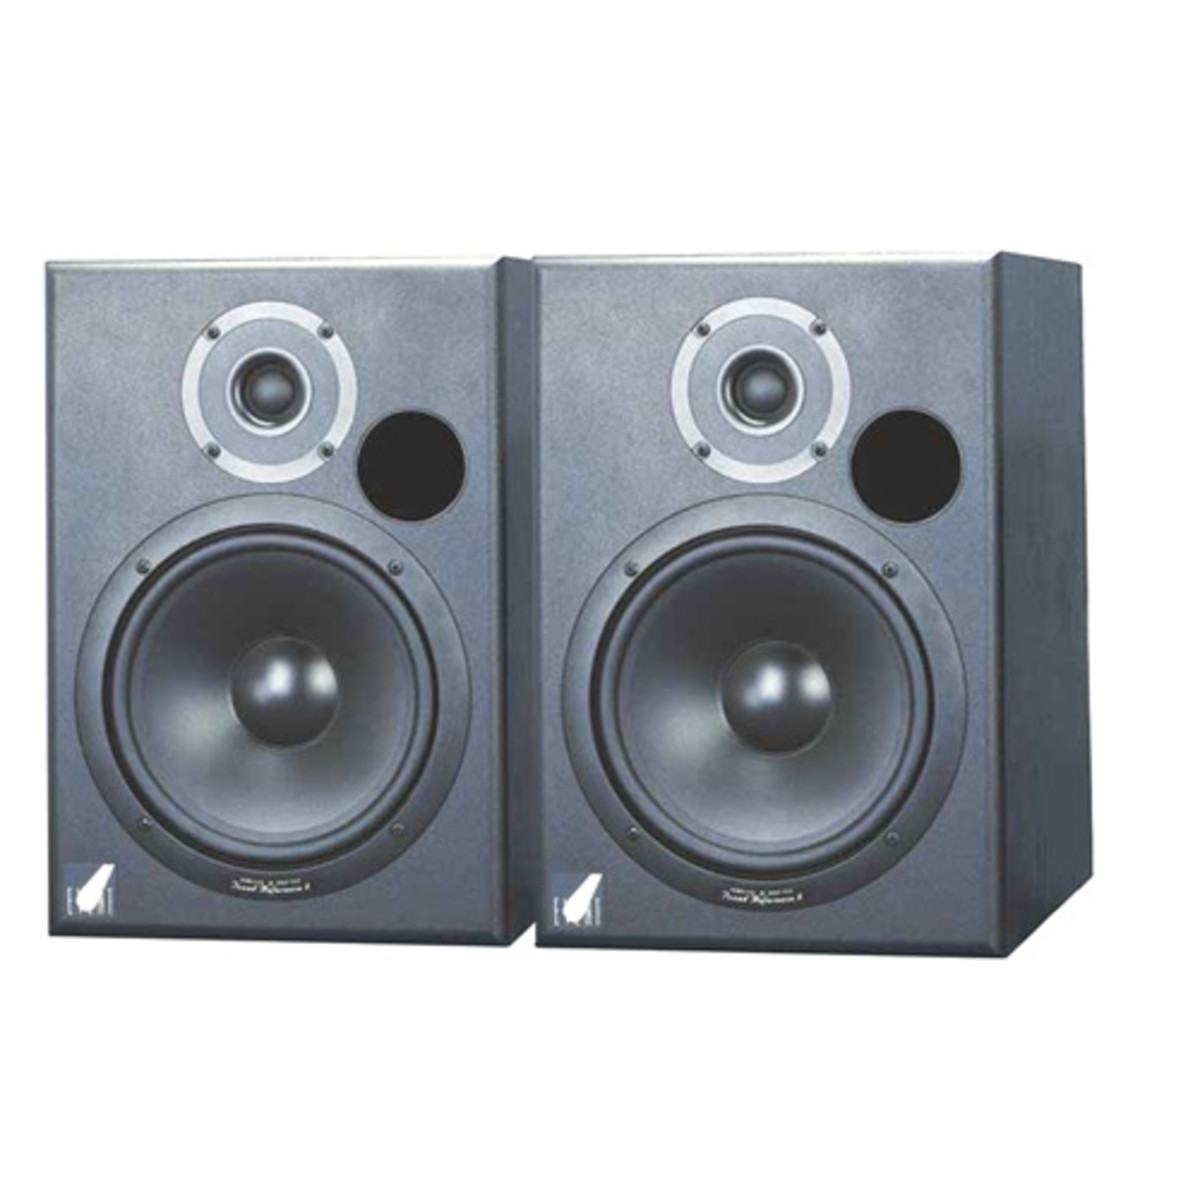 Event Studio Monitors : disc event tr8 active studio monitors at ~ Hamham.info Haus und Dekorationen